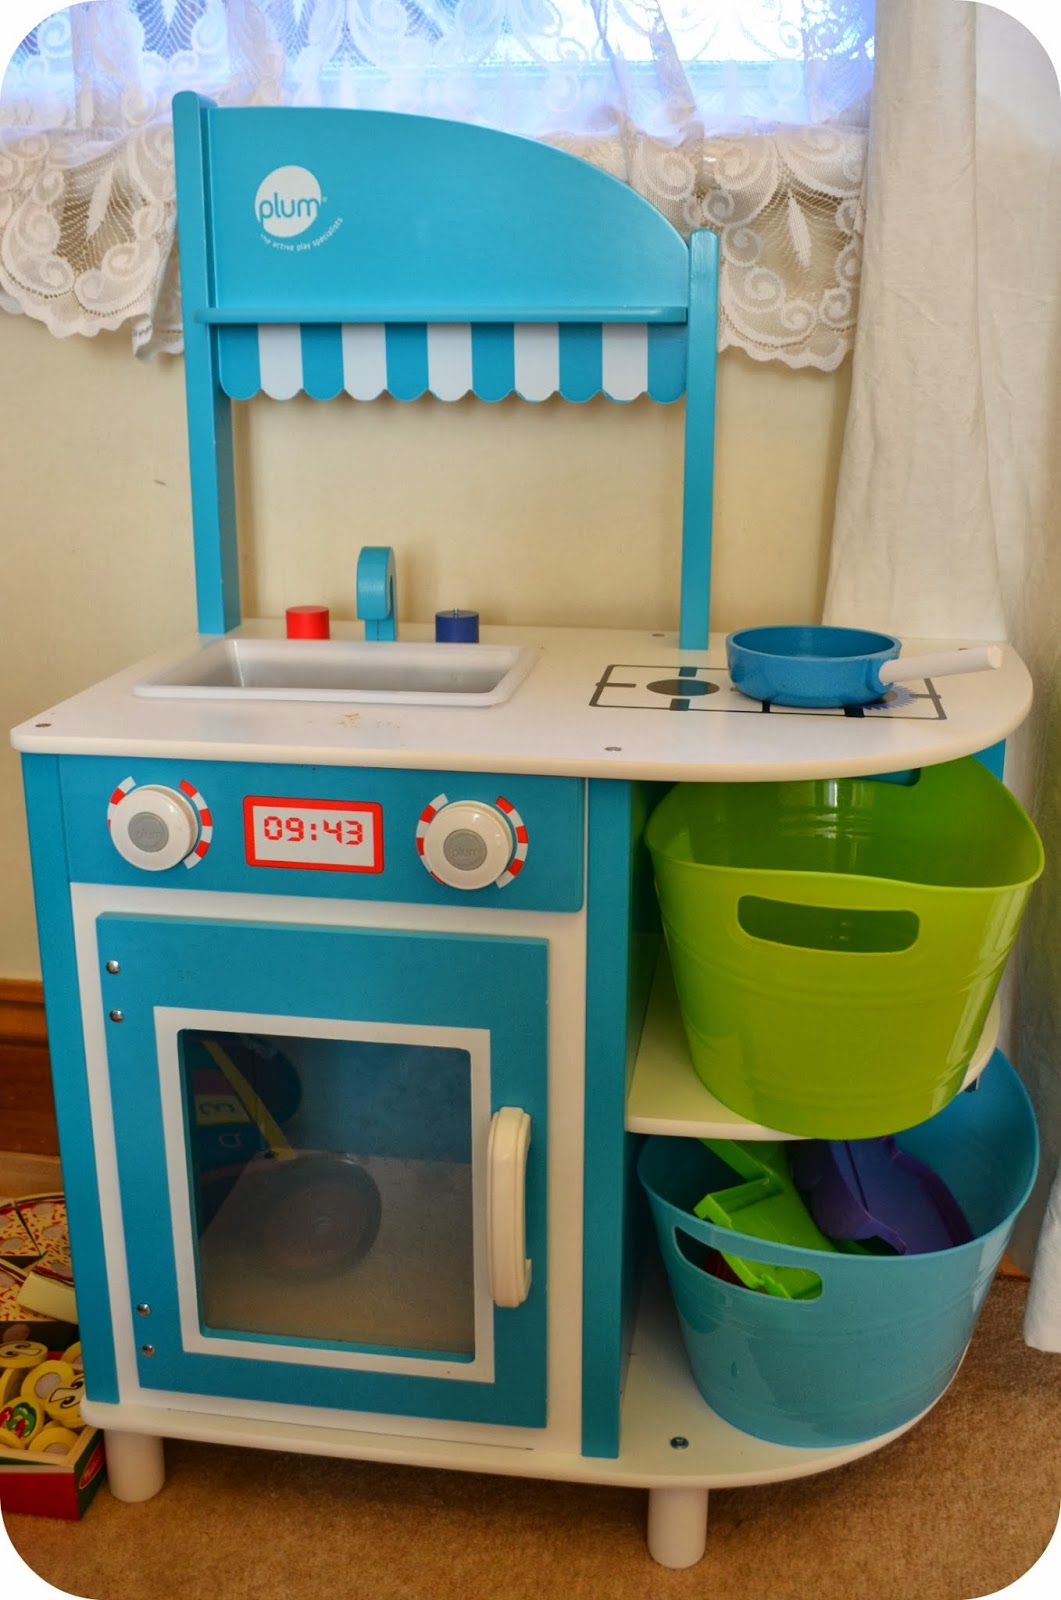 The Adventure of Parenthood: Plum Toy Kitchen Review